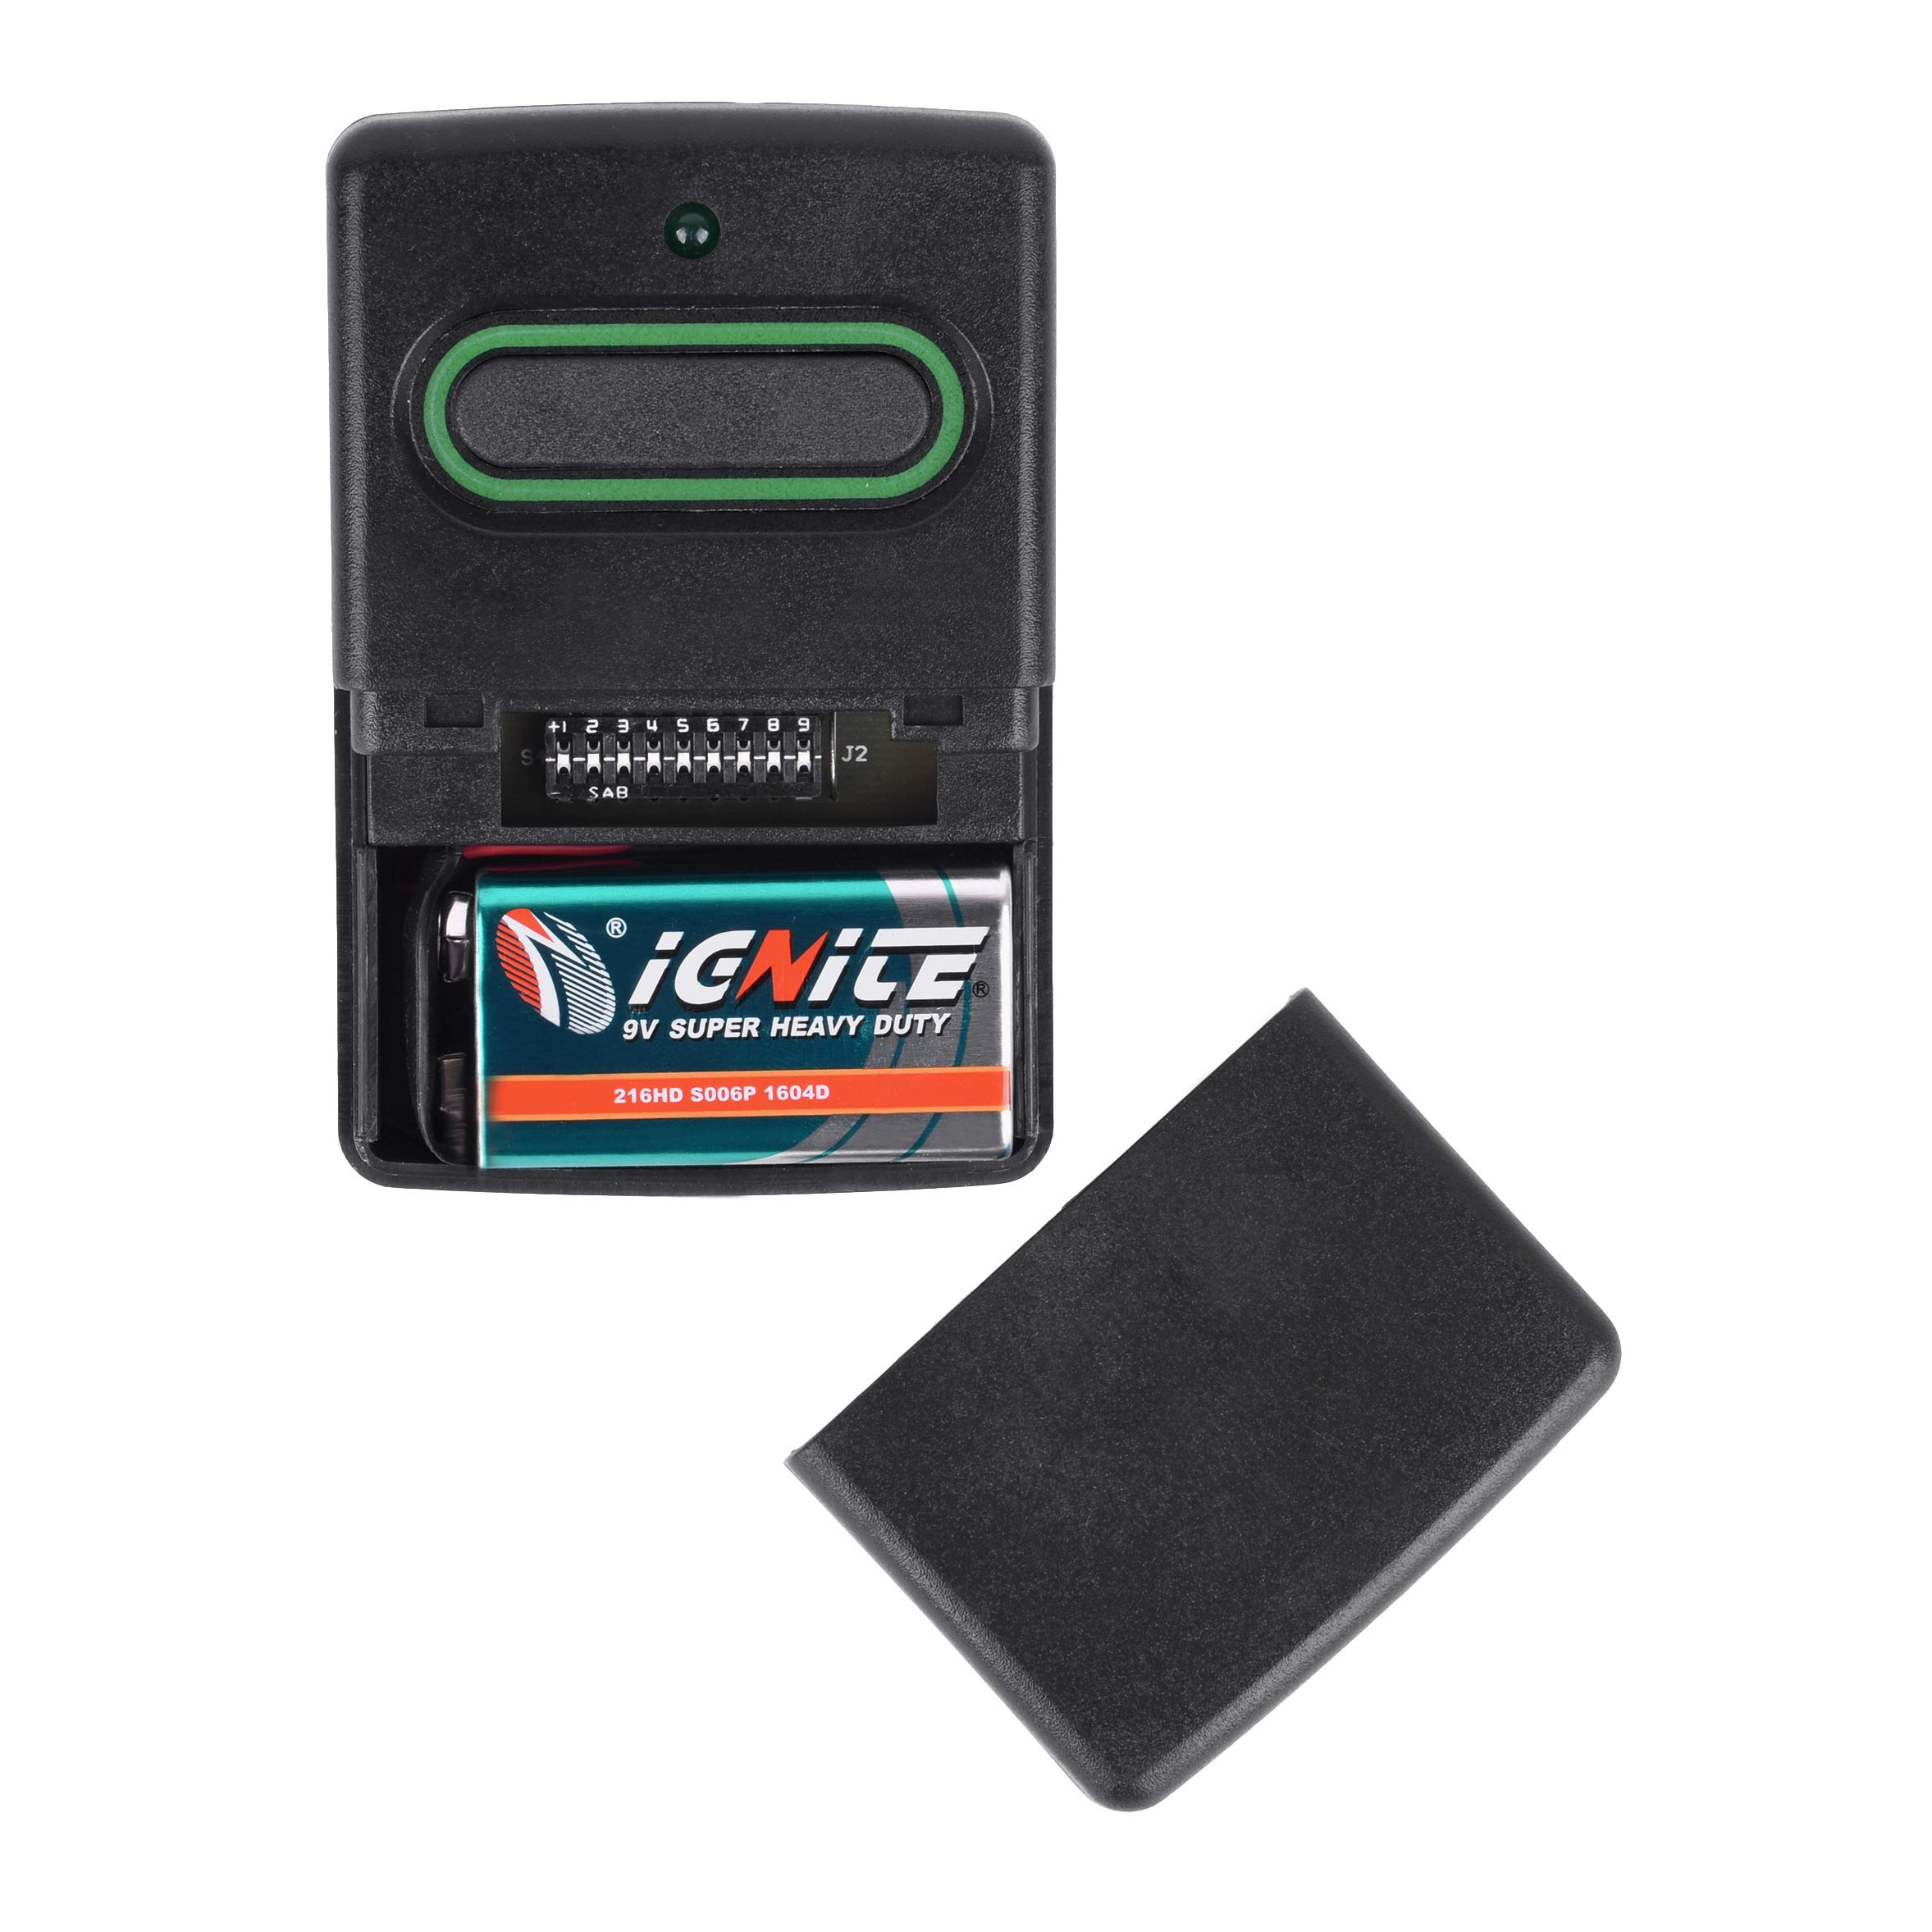 ExcelTek RB741 Compatible Garage Door Remote Control with GTO Mighty Mule RB743 FM134 FM135 318MHz (3 Pack) by ExcelTek (Image #5)